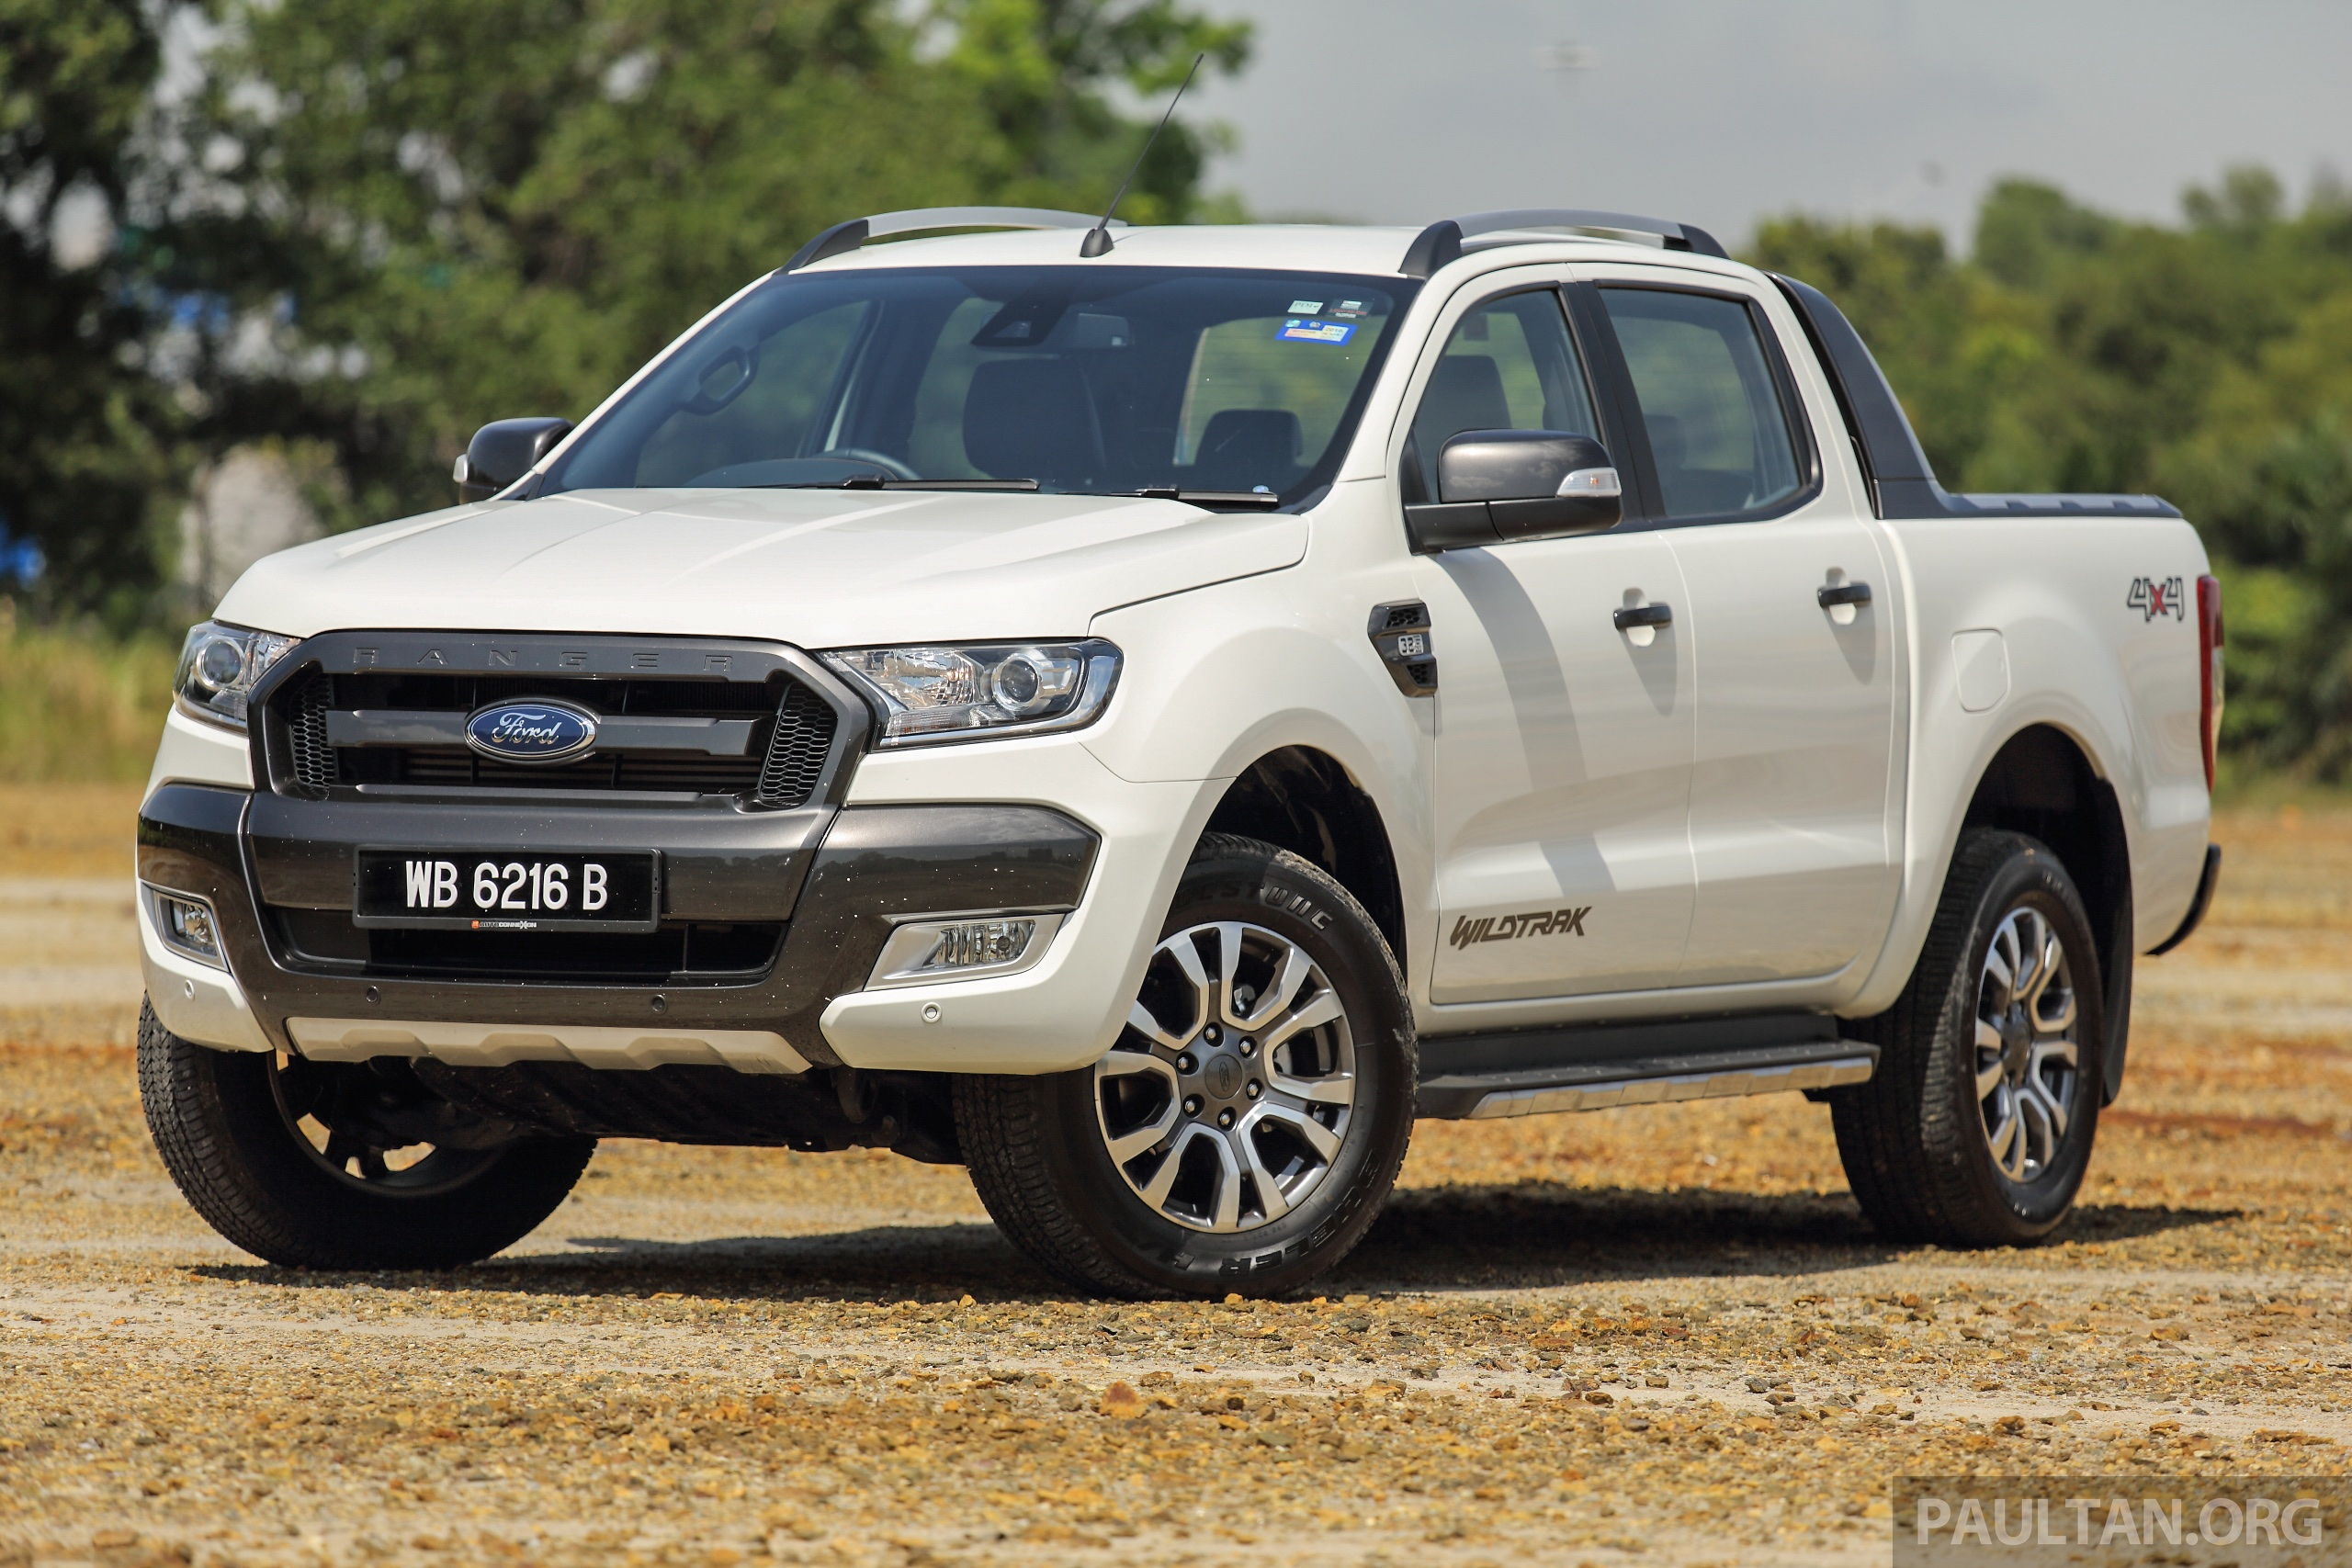 2016 ford ranger prices revised 2 2 3 2 xlt variants up. Black Bedroom Furniture Sets. Home Design Ideas